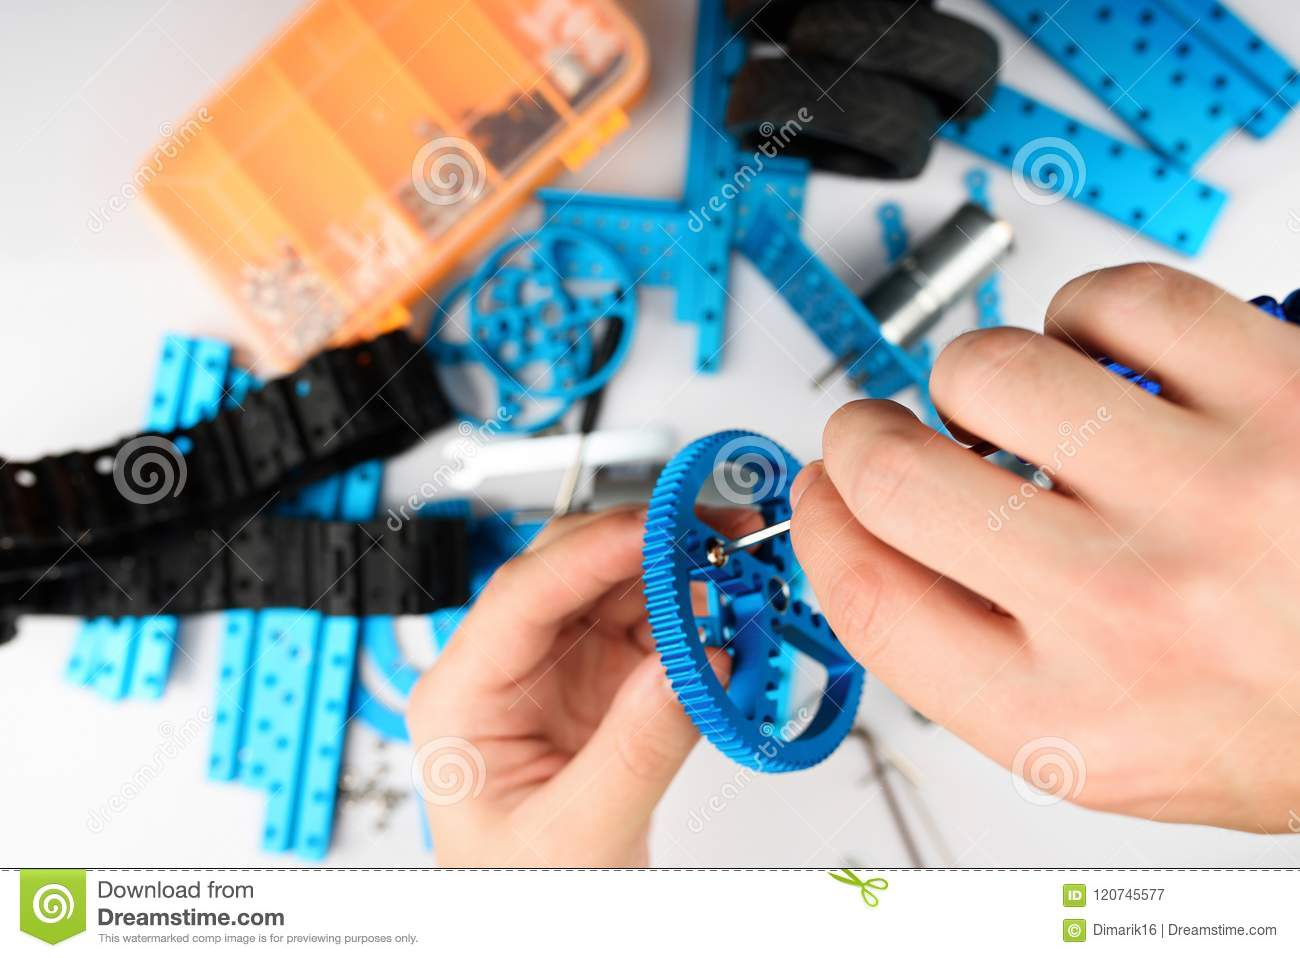 Rc modeling concept stock image  Image of maintenance